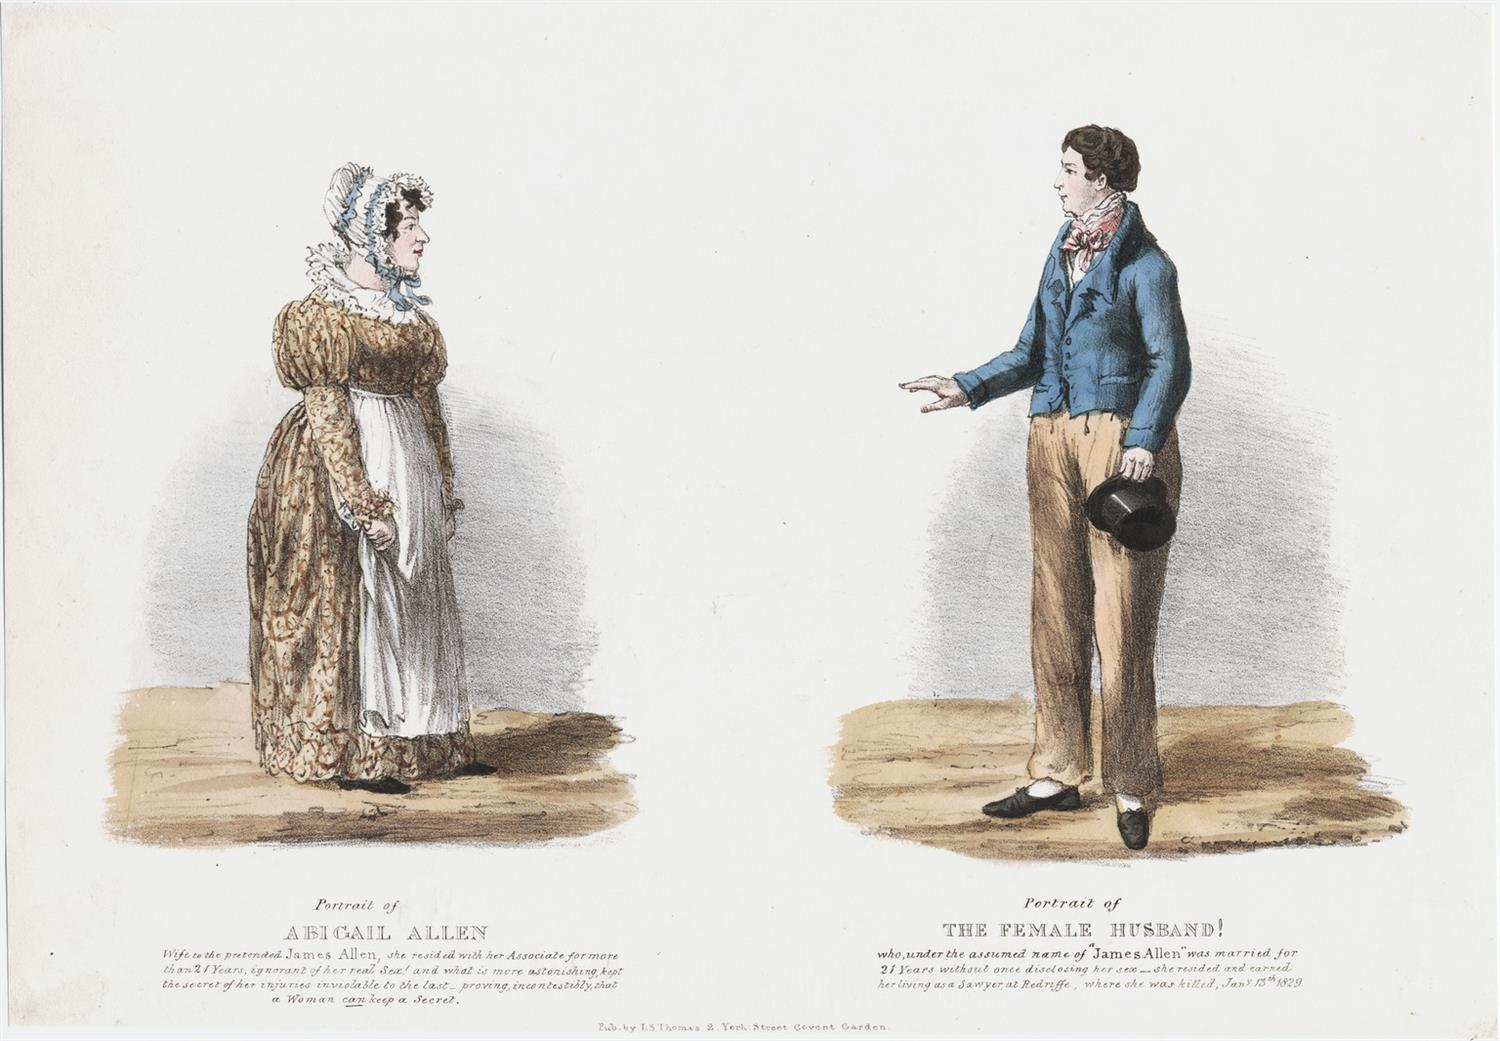 An image of Abigail and James Allen circa 1829